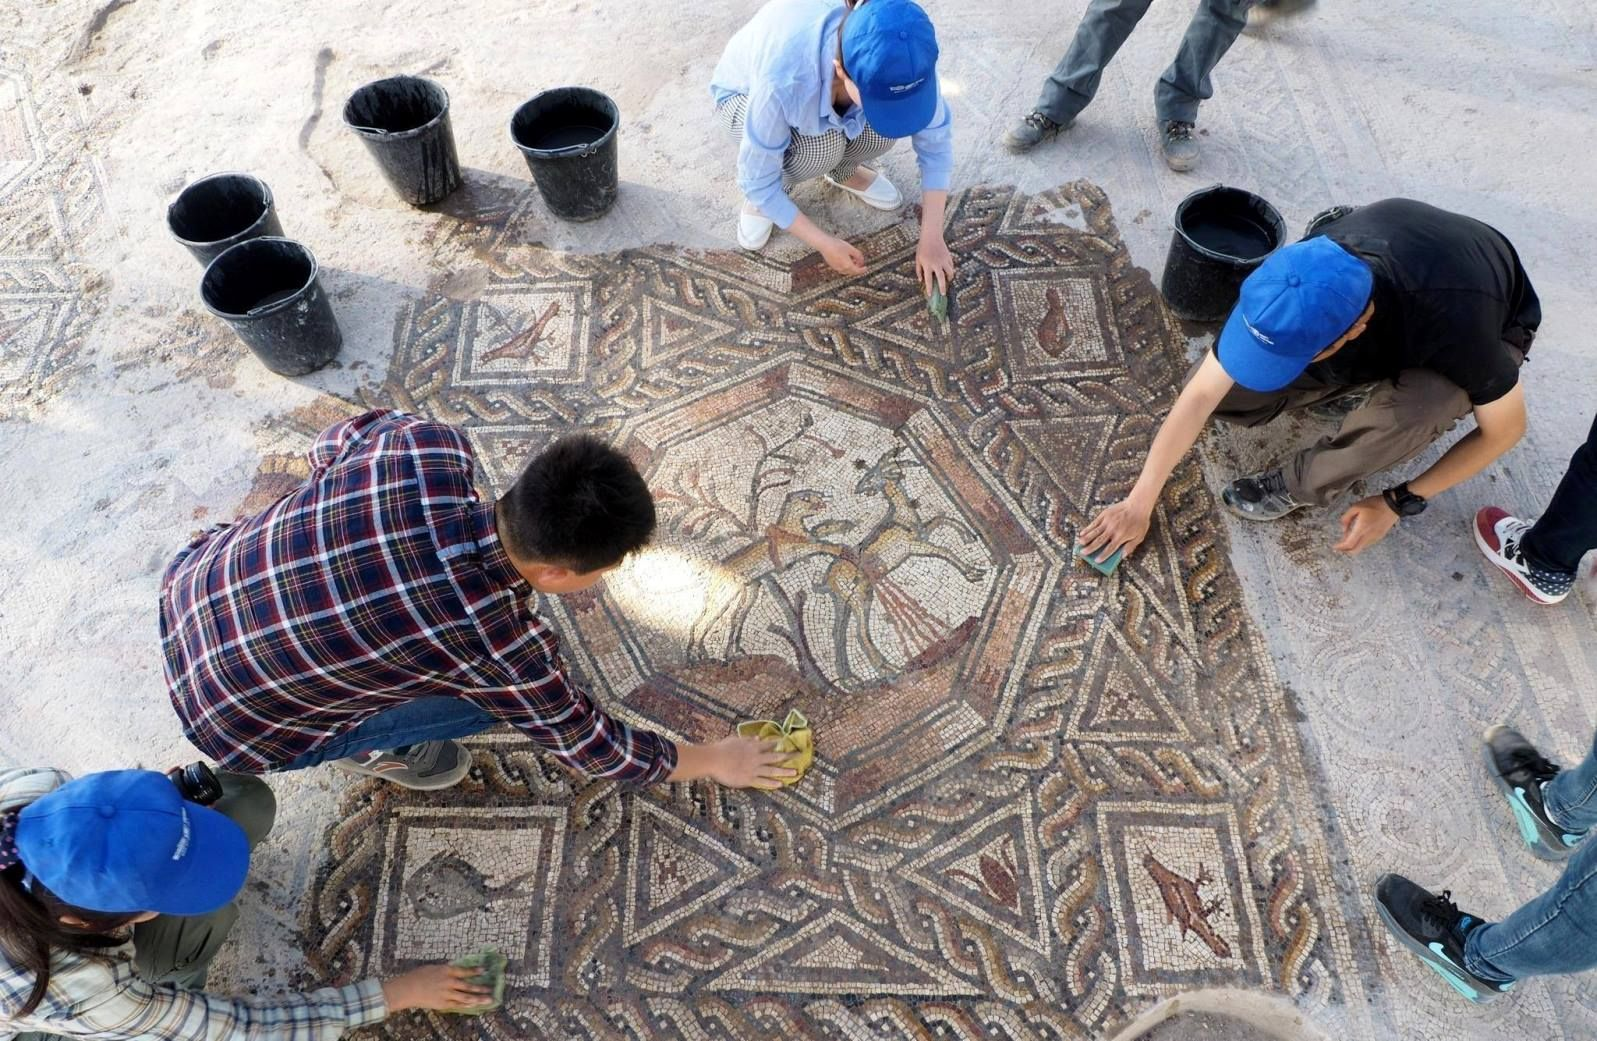 The latest mosaic find in Lod. Photo courtesy of Israel Antiquities Authority